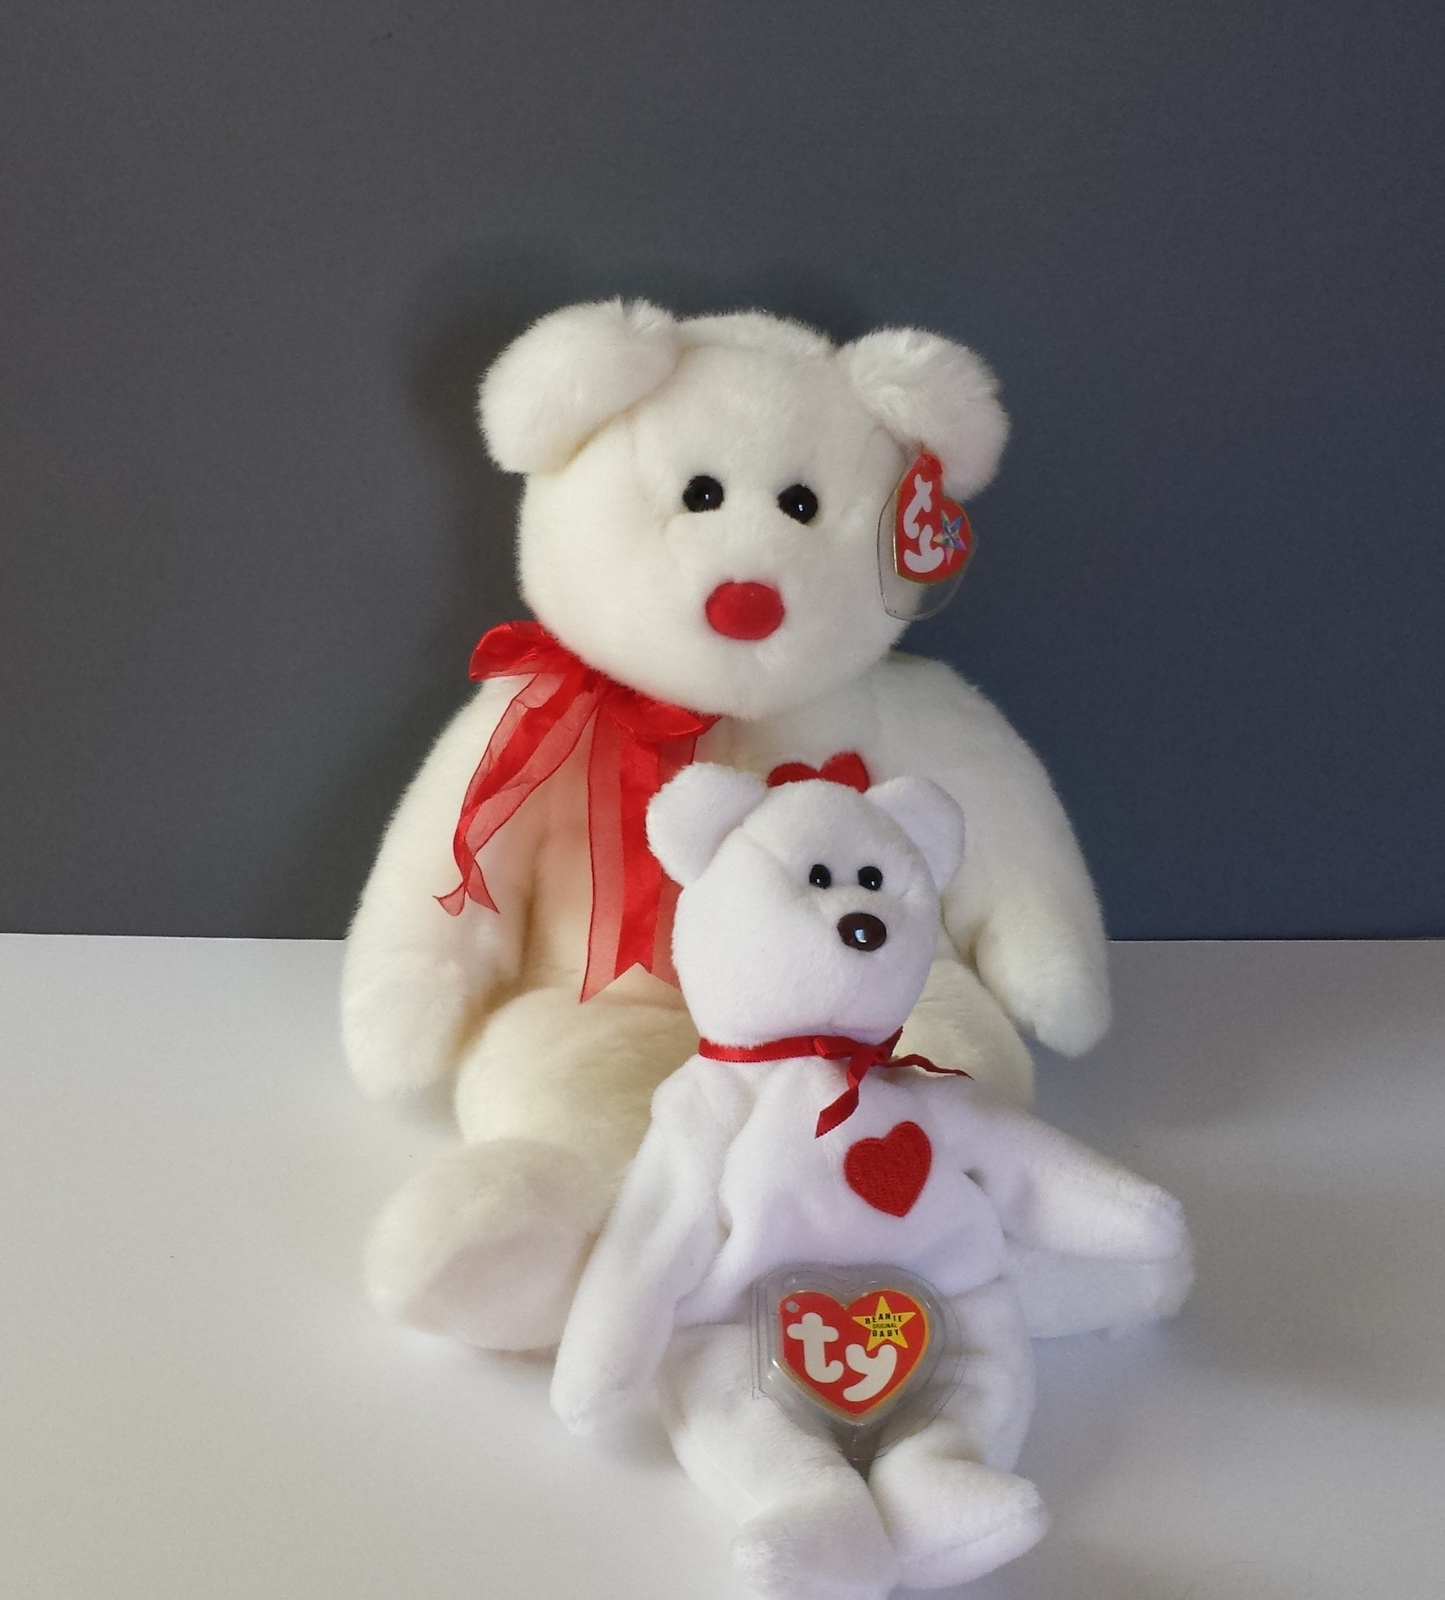 085a8b04930 Original Ty Valentino Beanie Baby and Beanie and 50 similar items